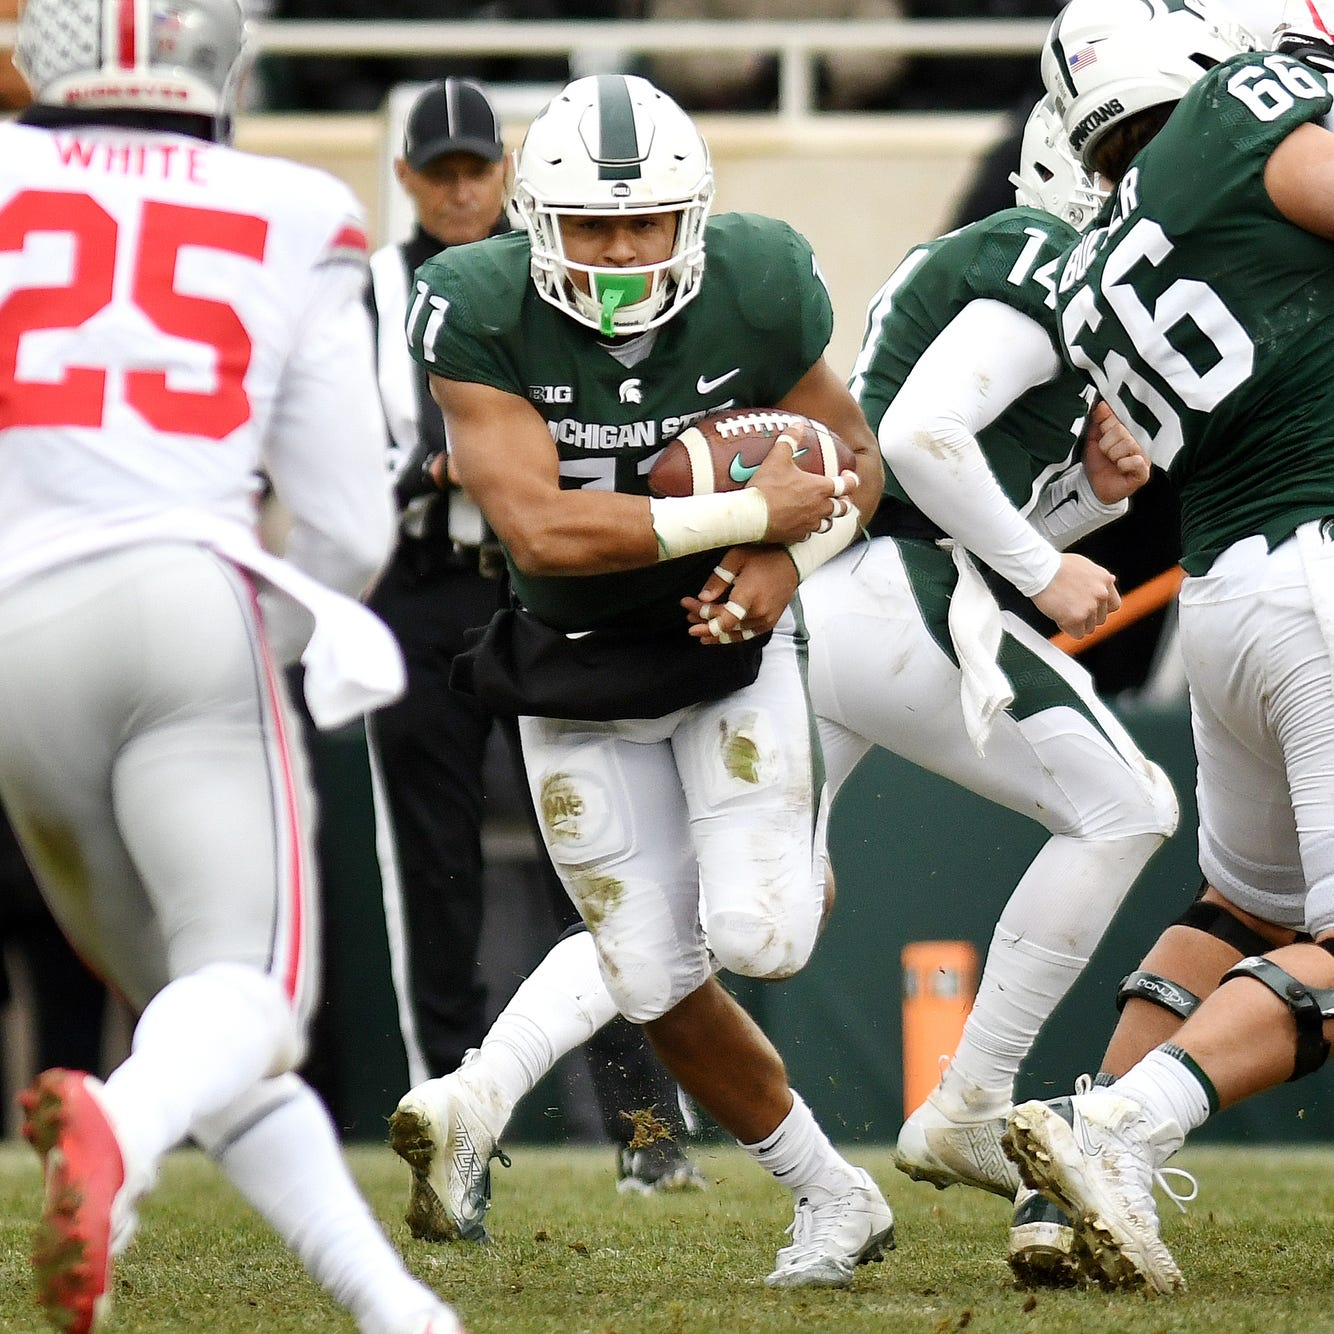 MSU vs. Rutgers: Tickets as low as $6 for last home game of the season